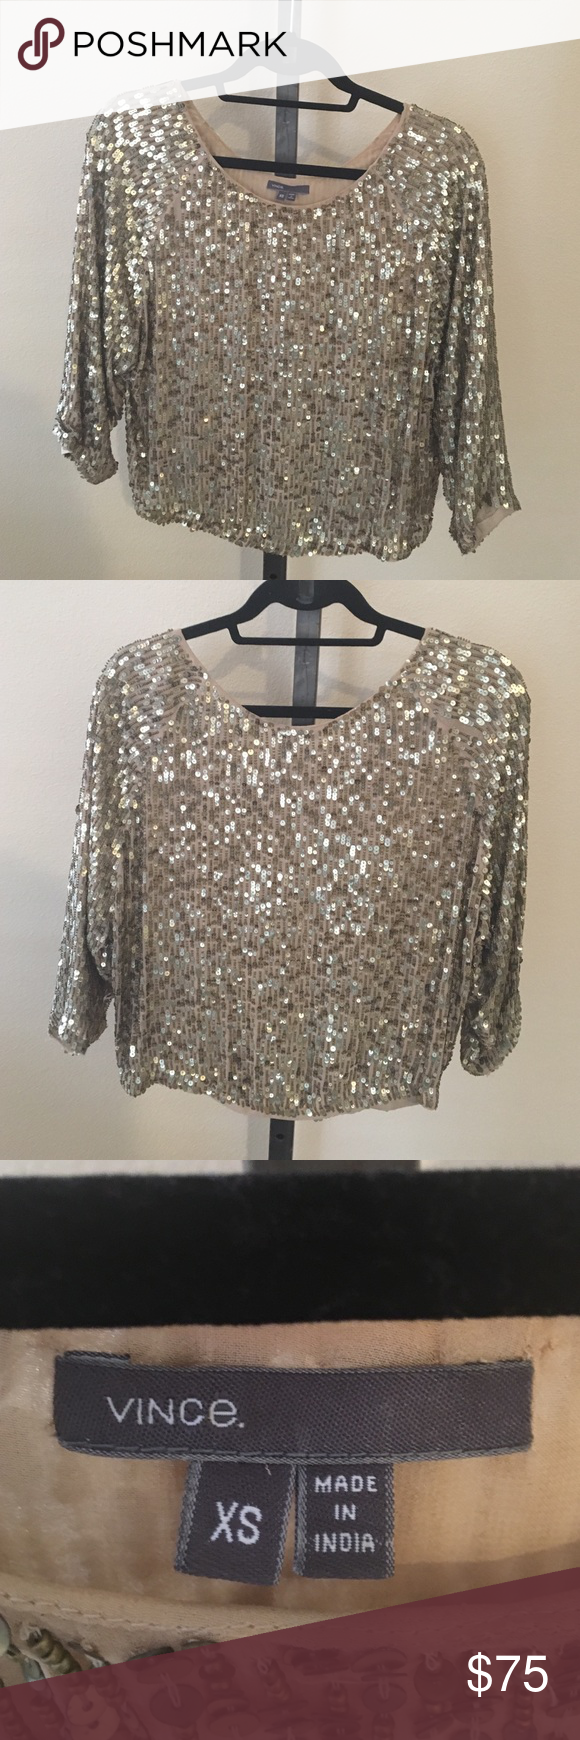 7190b73a9110d Vince Gold Sequin top Beautiful dolman sleeved sequin top. Lined in good  condition. There are a couple of spots there a missing sequins (pictured)  Fits a ...